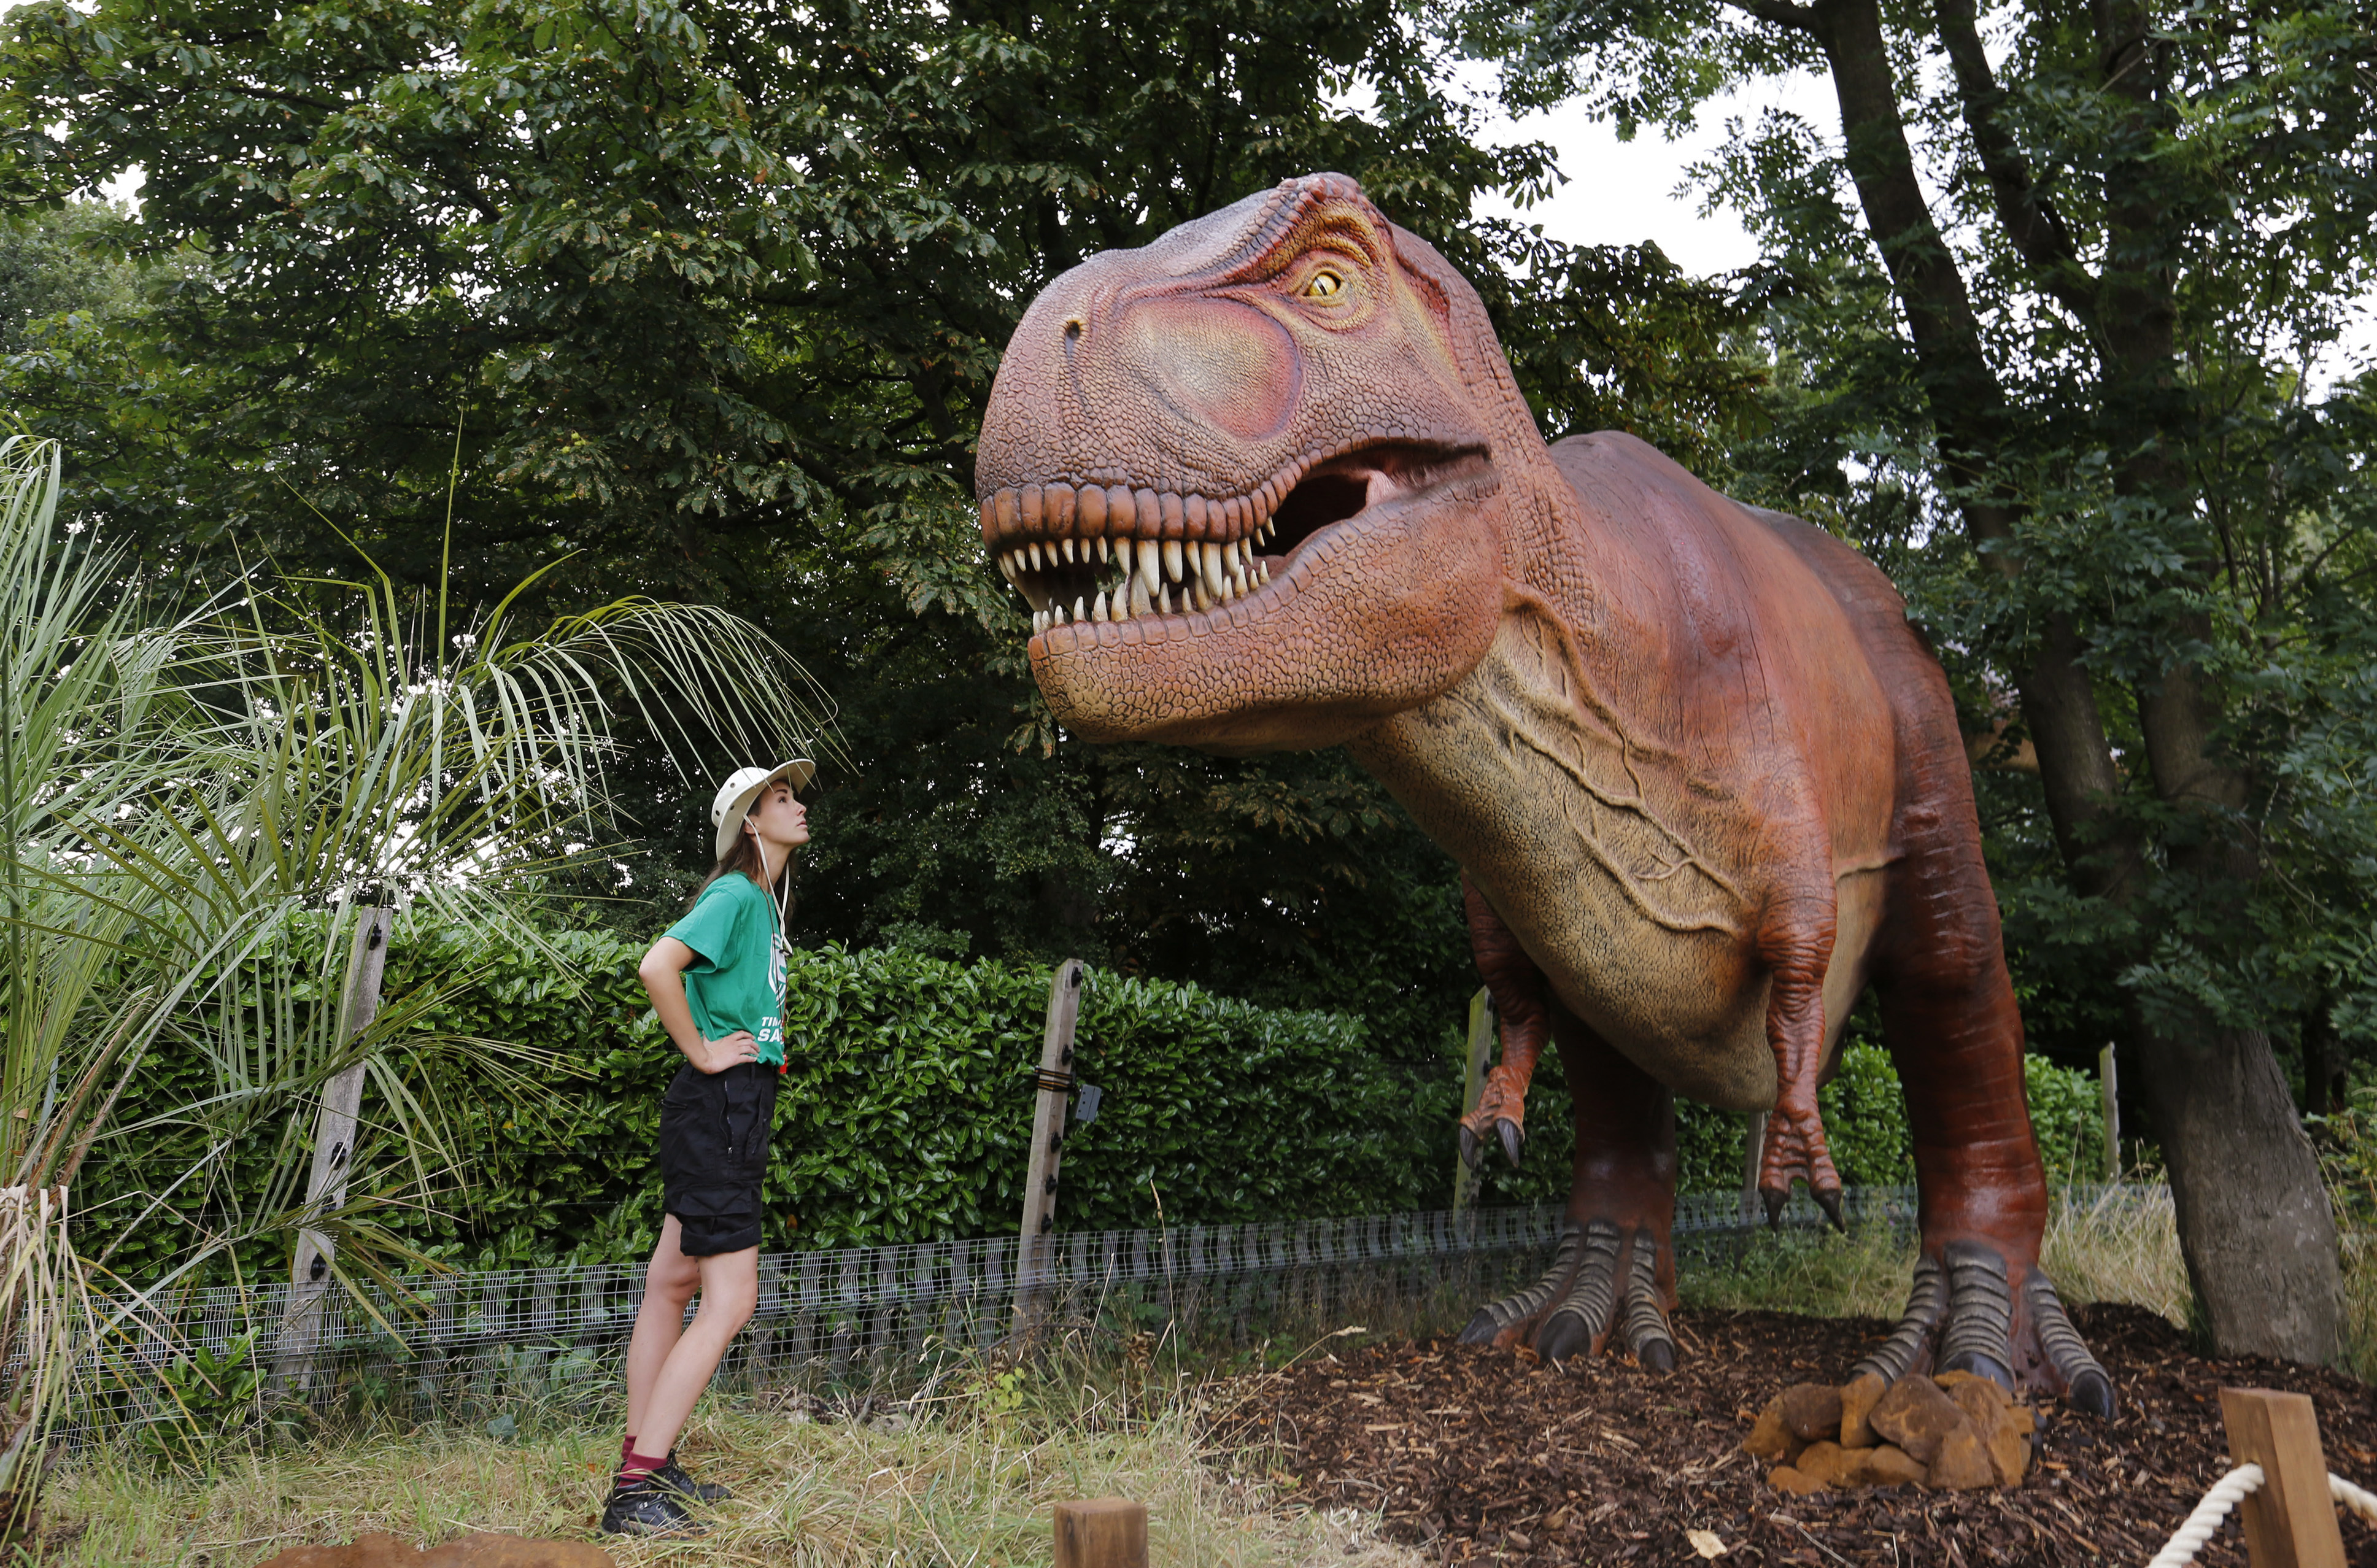 London Zoo welcomes a new kind of visitor: Robotic dinosaurs